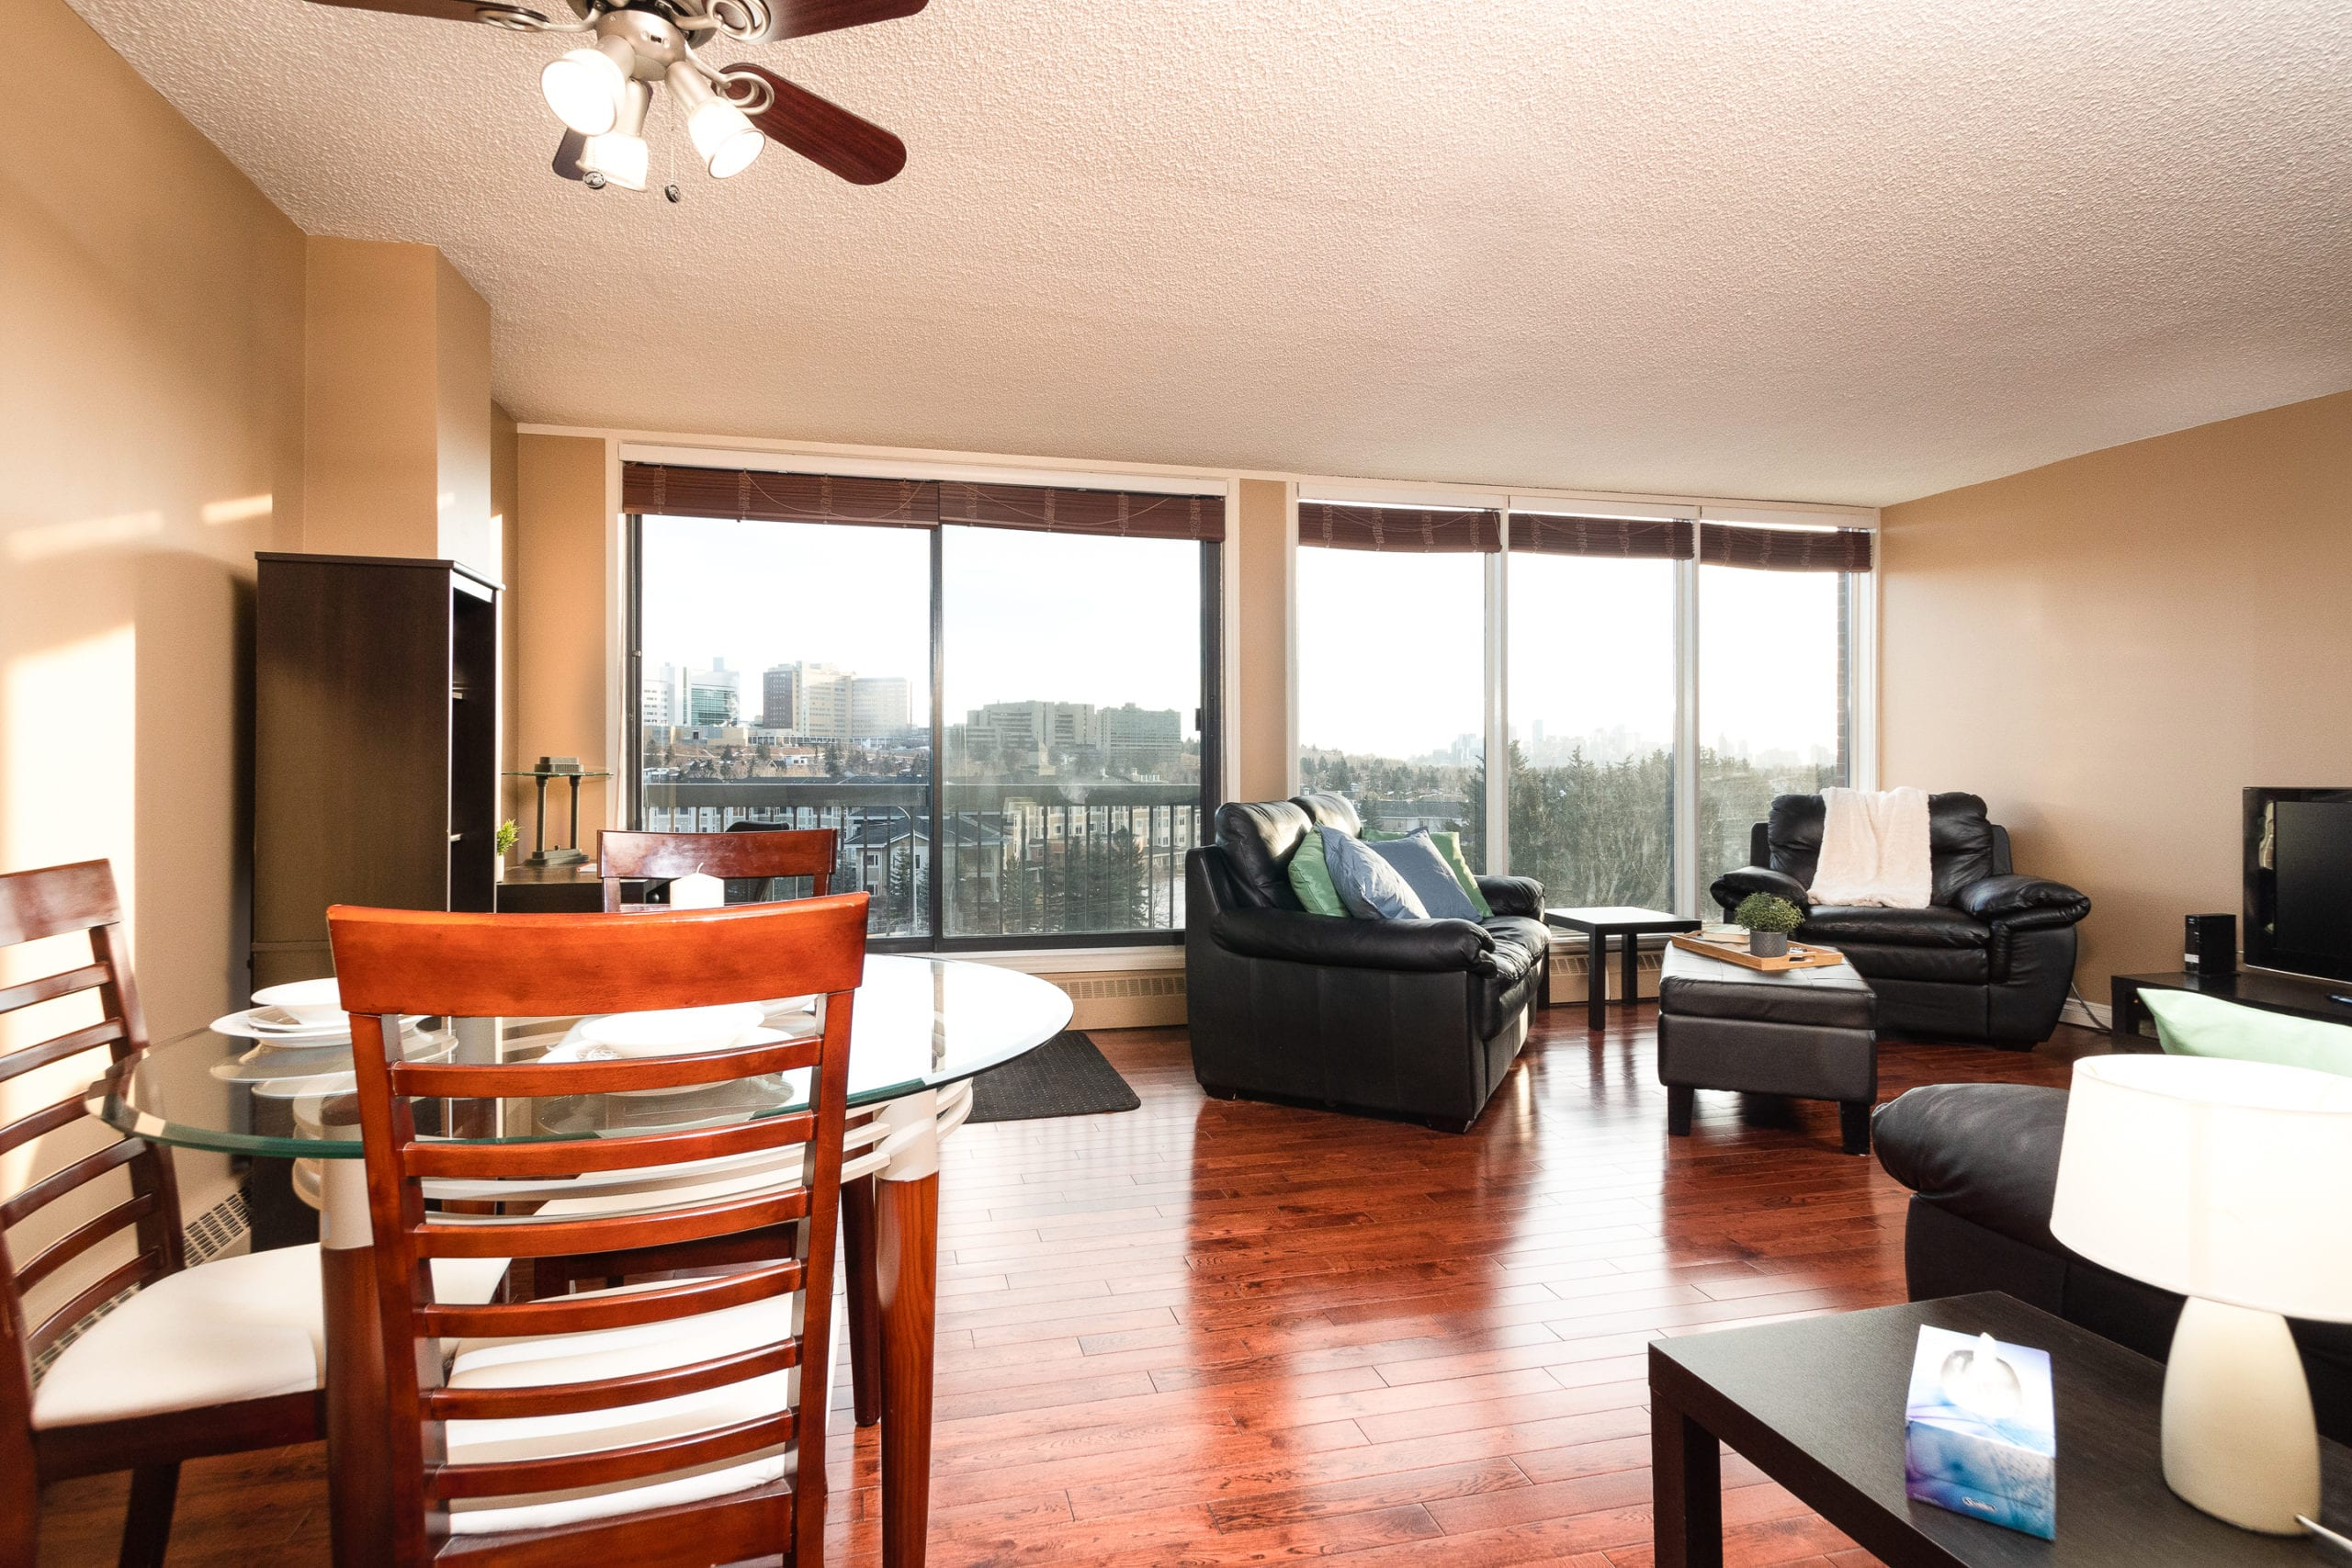 Hello Gorgeous - #705-145 point drive NW, Calgary AB - Tara Molina Real Estate (3 of 45)